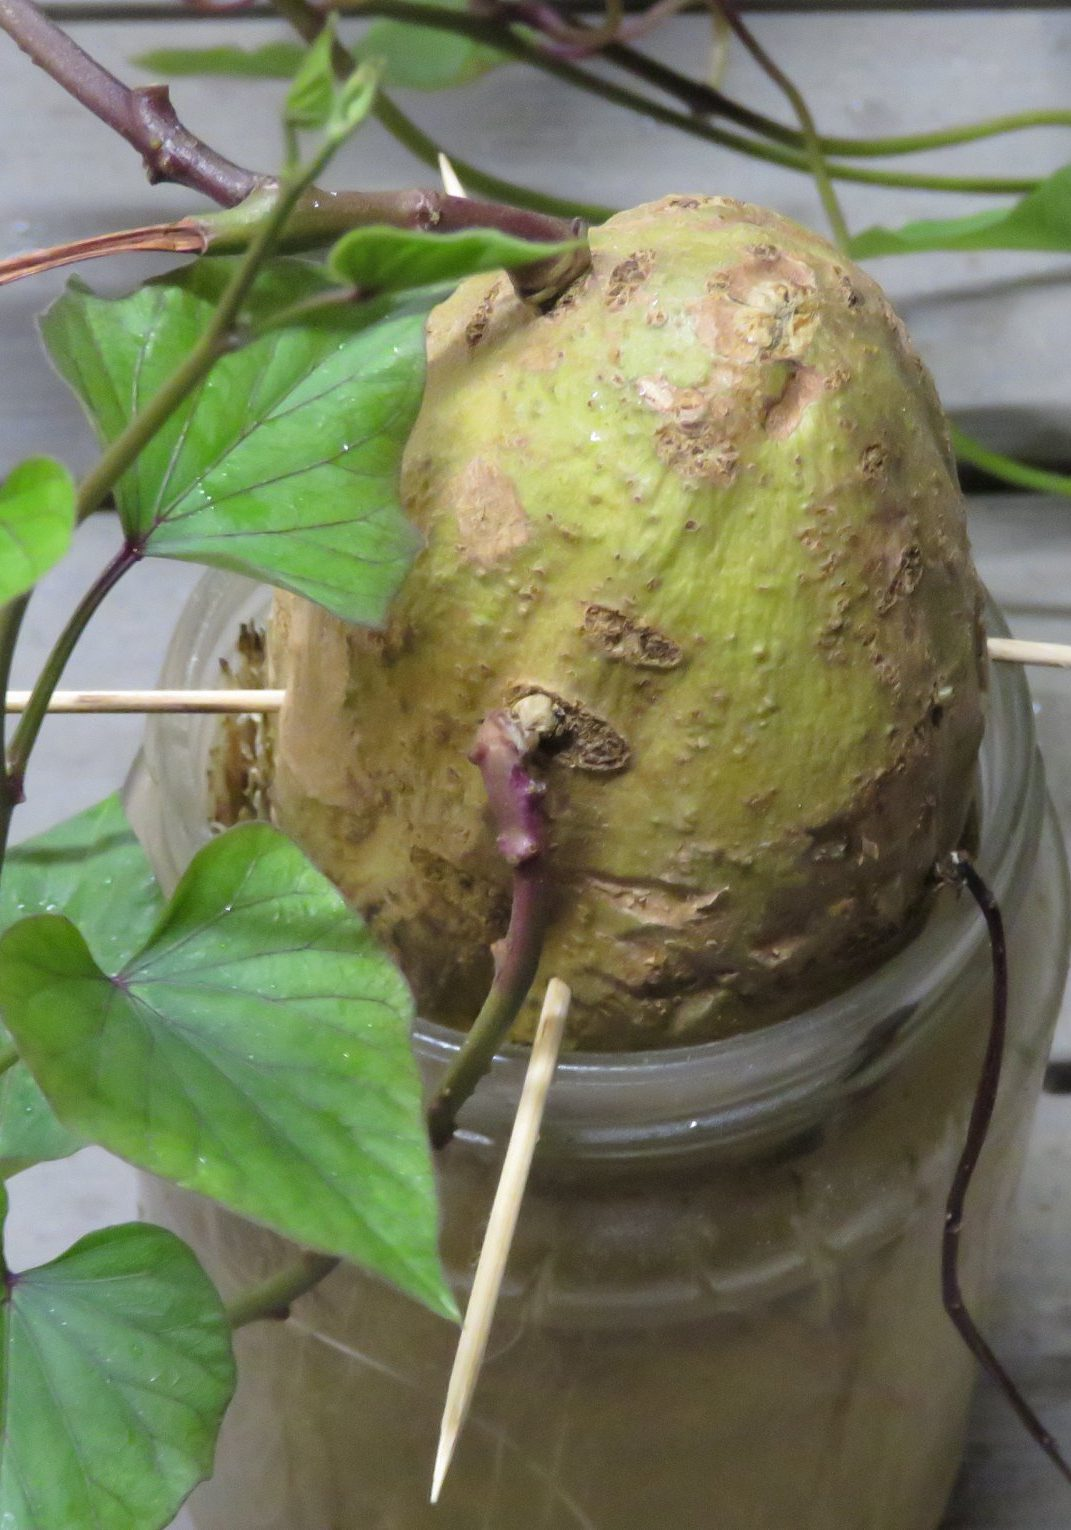 I started this sweet potato before Chanukah and soon I will plant the vines in the ground. I twisted them off and left them in water for a while to get them ready. Note how I used toothpicks to prop up the tuber, since the jar was kind of big.